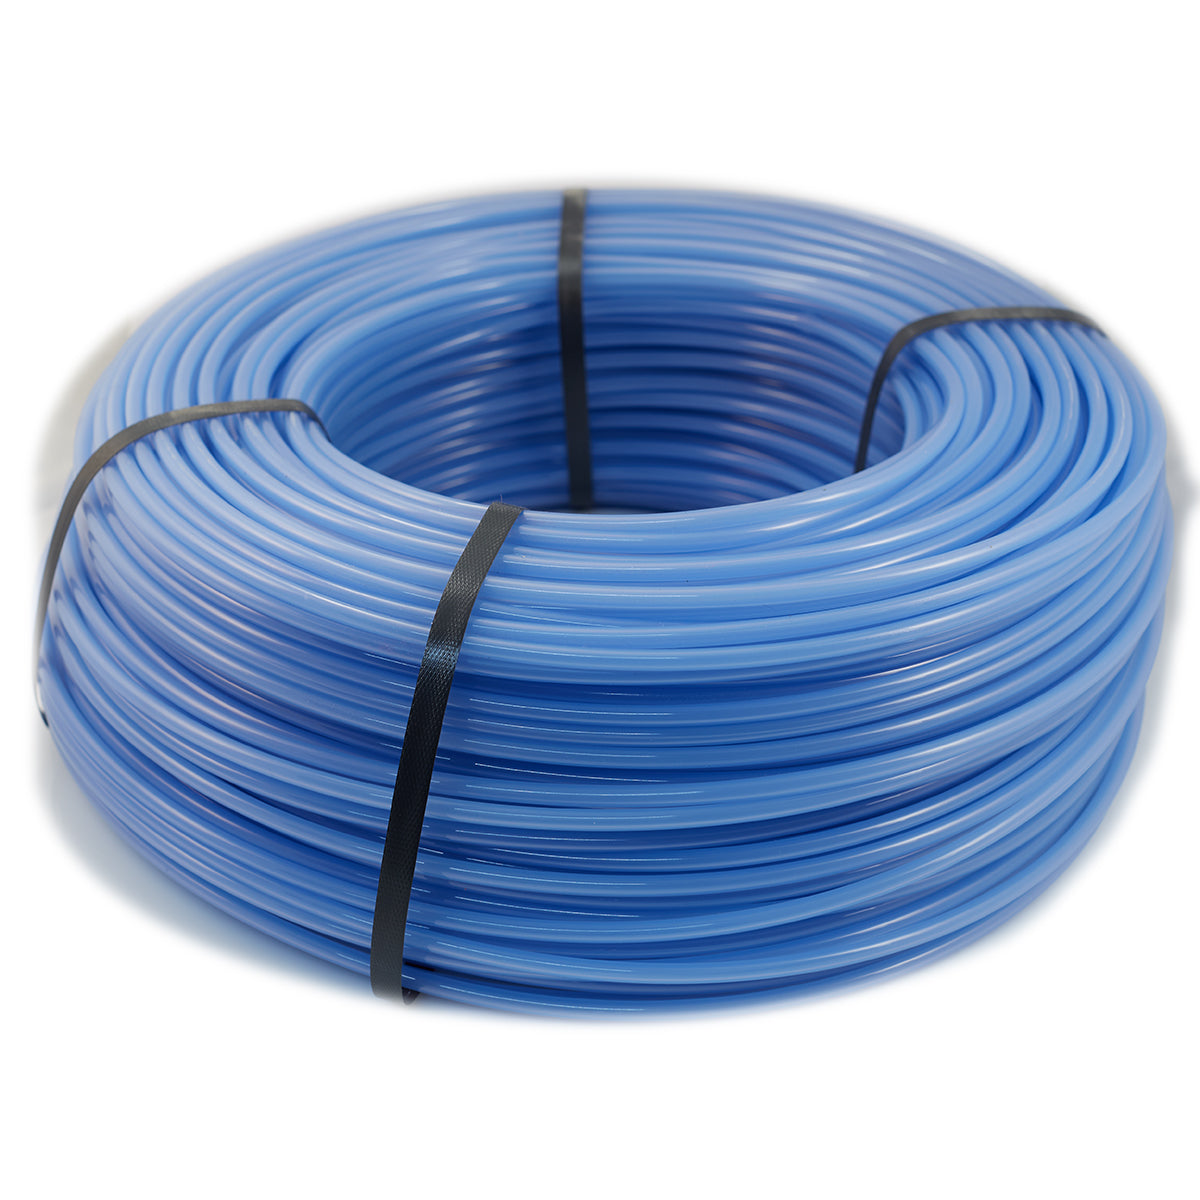 "CDL Semi Rigid 3/16"" Blue Tubing, 1000' Roll"